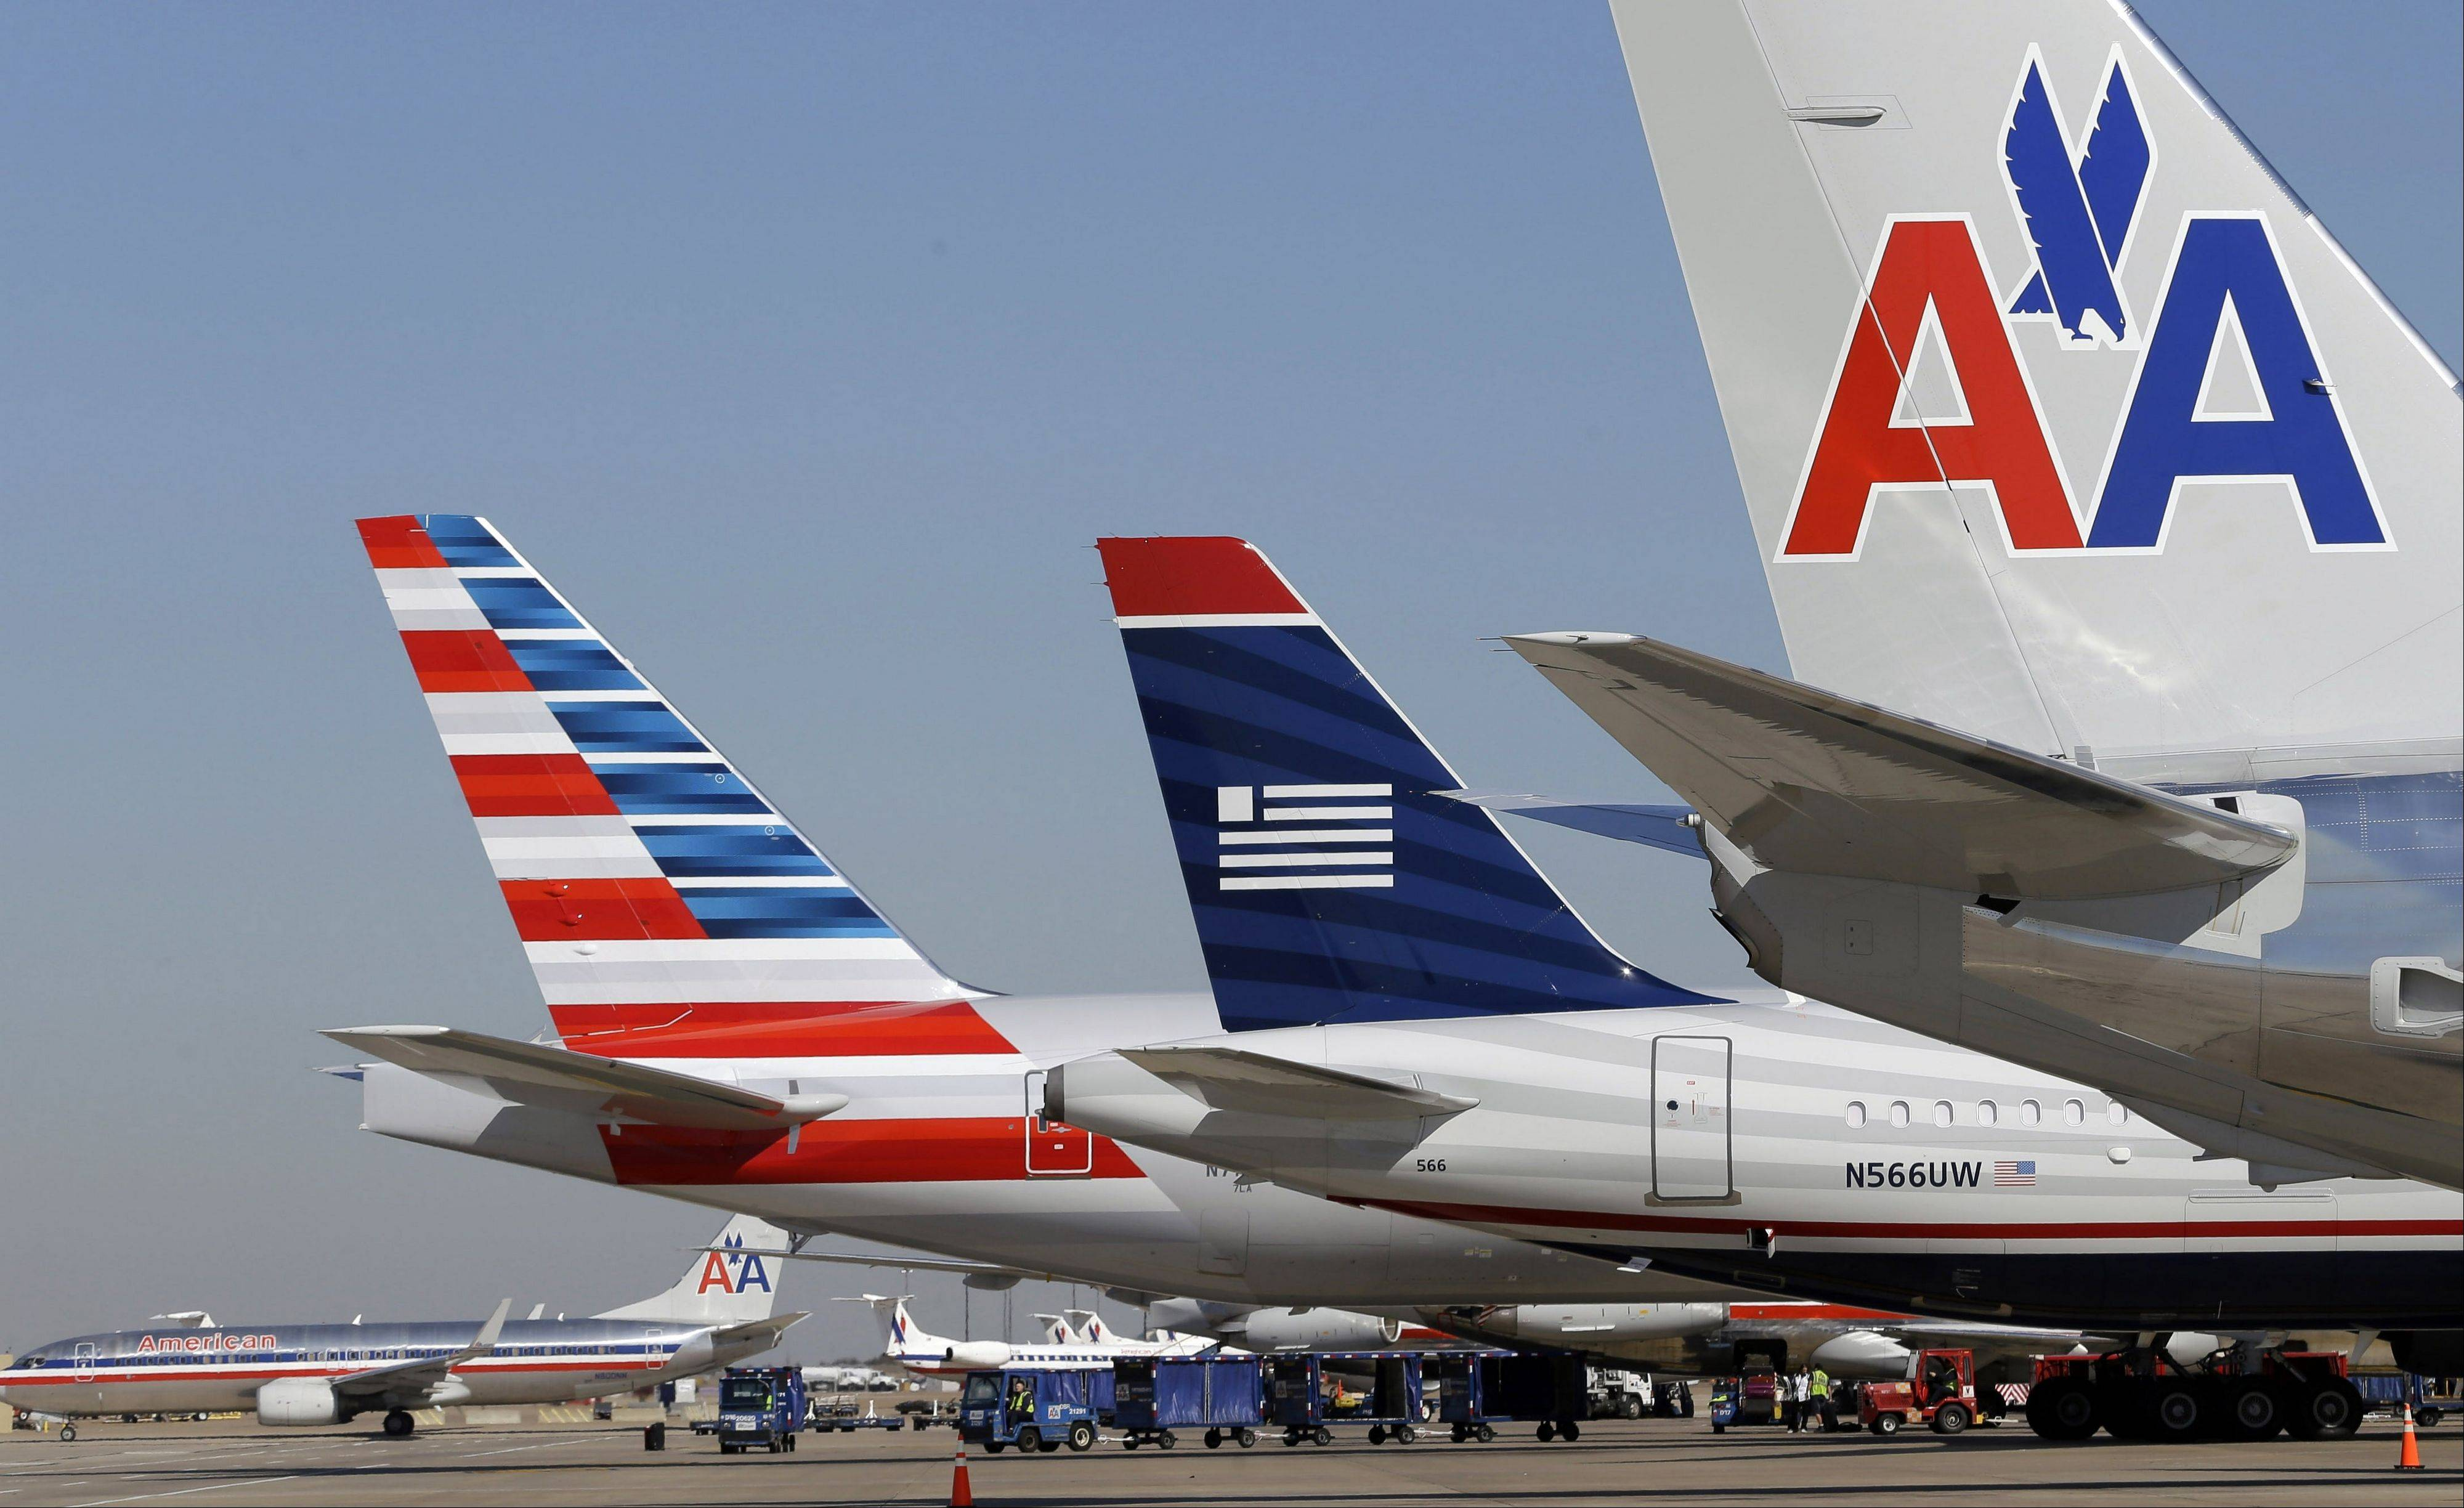 US Airways and American Airlines planes are shown at gates at DFW International Airport in Grapevine, Texas. The Justice Department and a number of state attorneys general on Tuesday, Aug. 13, 2013, challenged a proposed $11 billion merger between US Airways Group Inc. and American Airlines' parent company, AMR Corp.